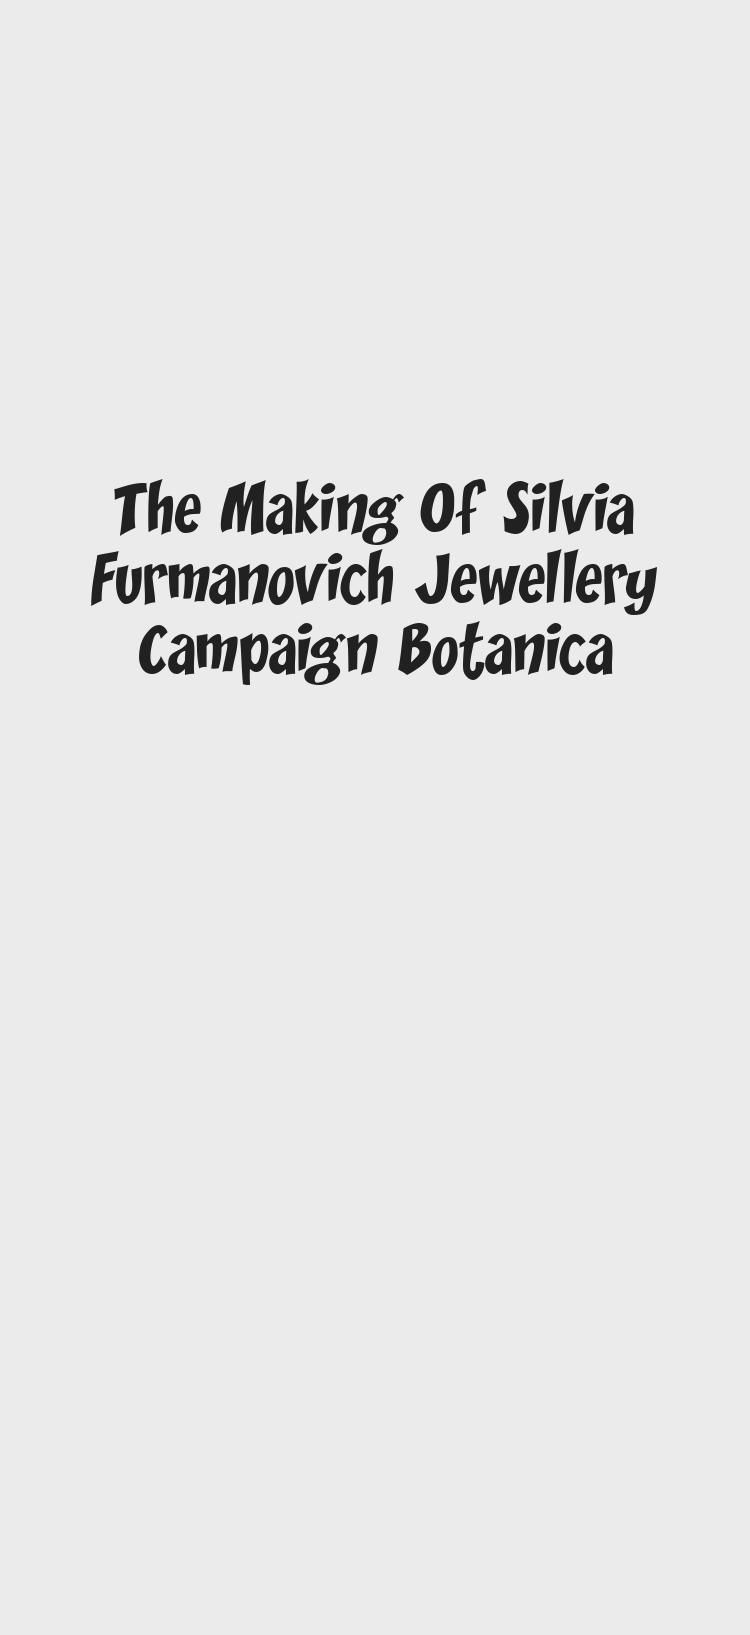 Photo of The Making Of Silvia Furmanovich Jewellery Campaign Botanica